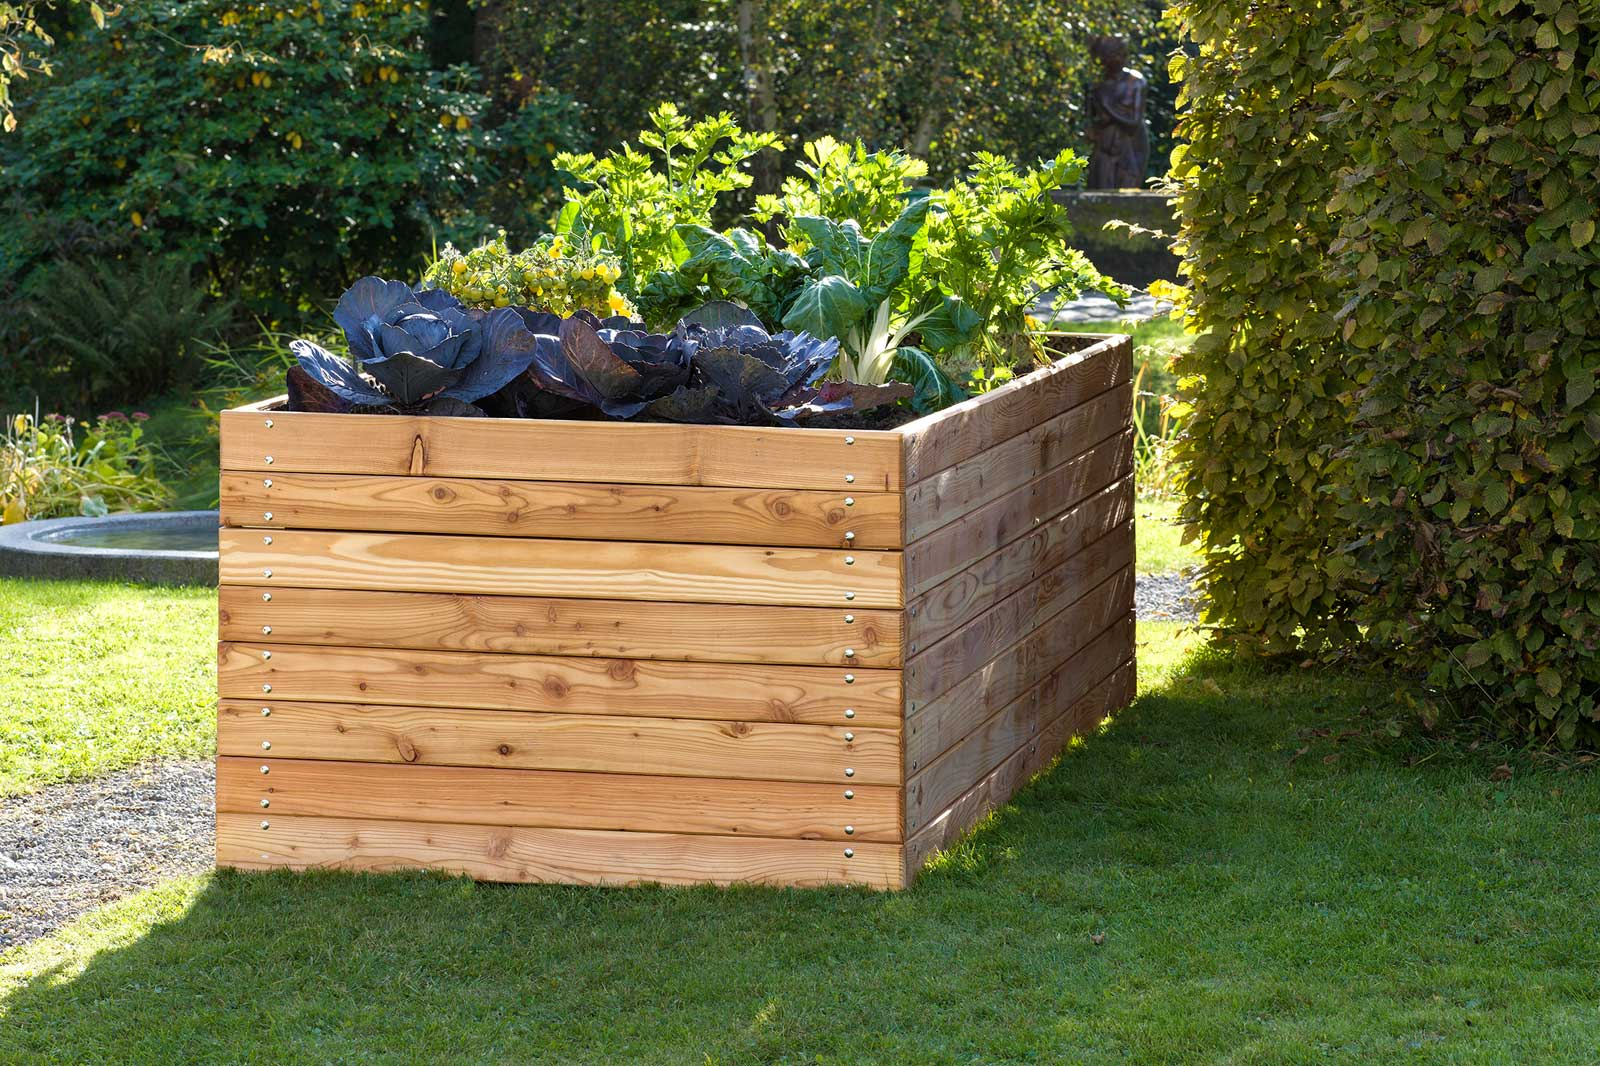 Raised beds by Sager for terrace or balcony, Swiss Made